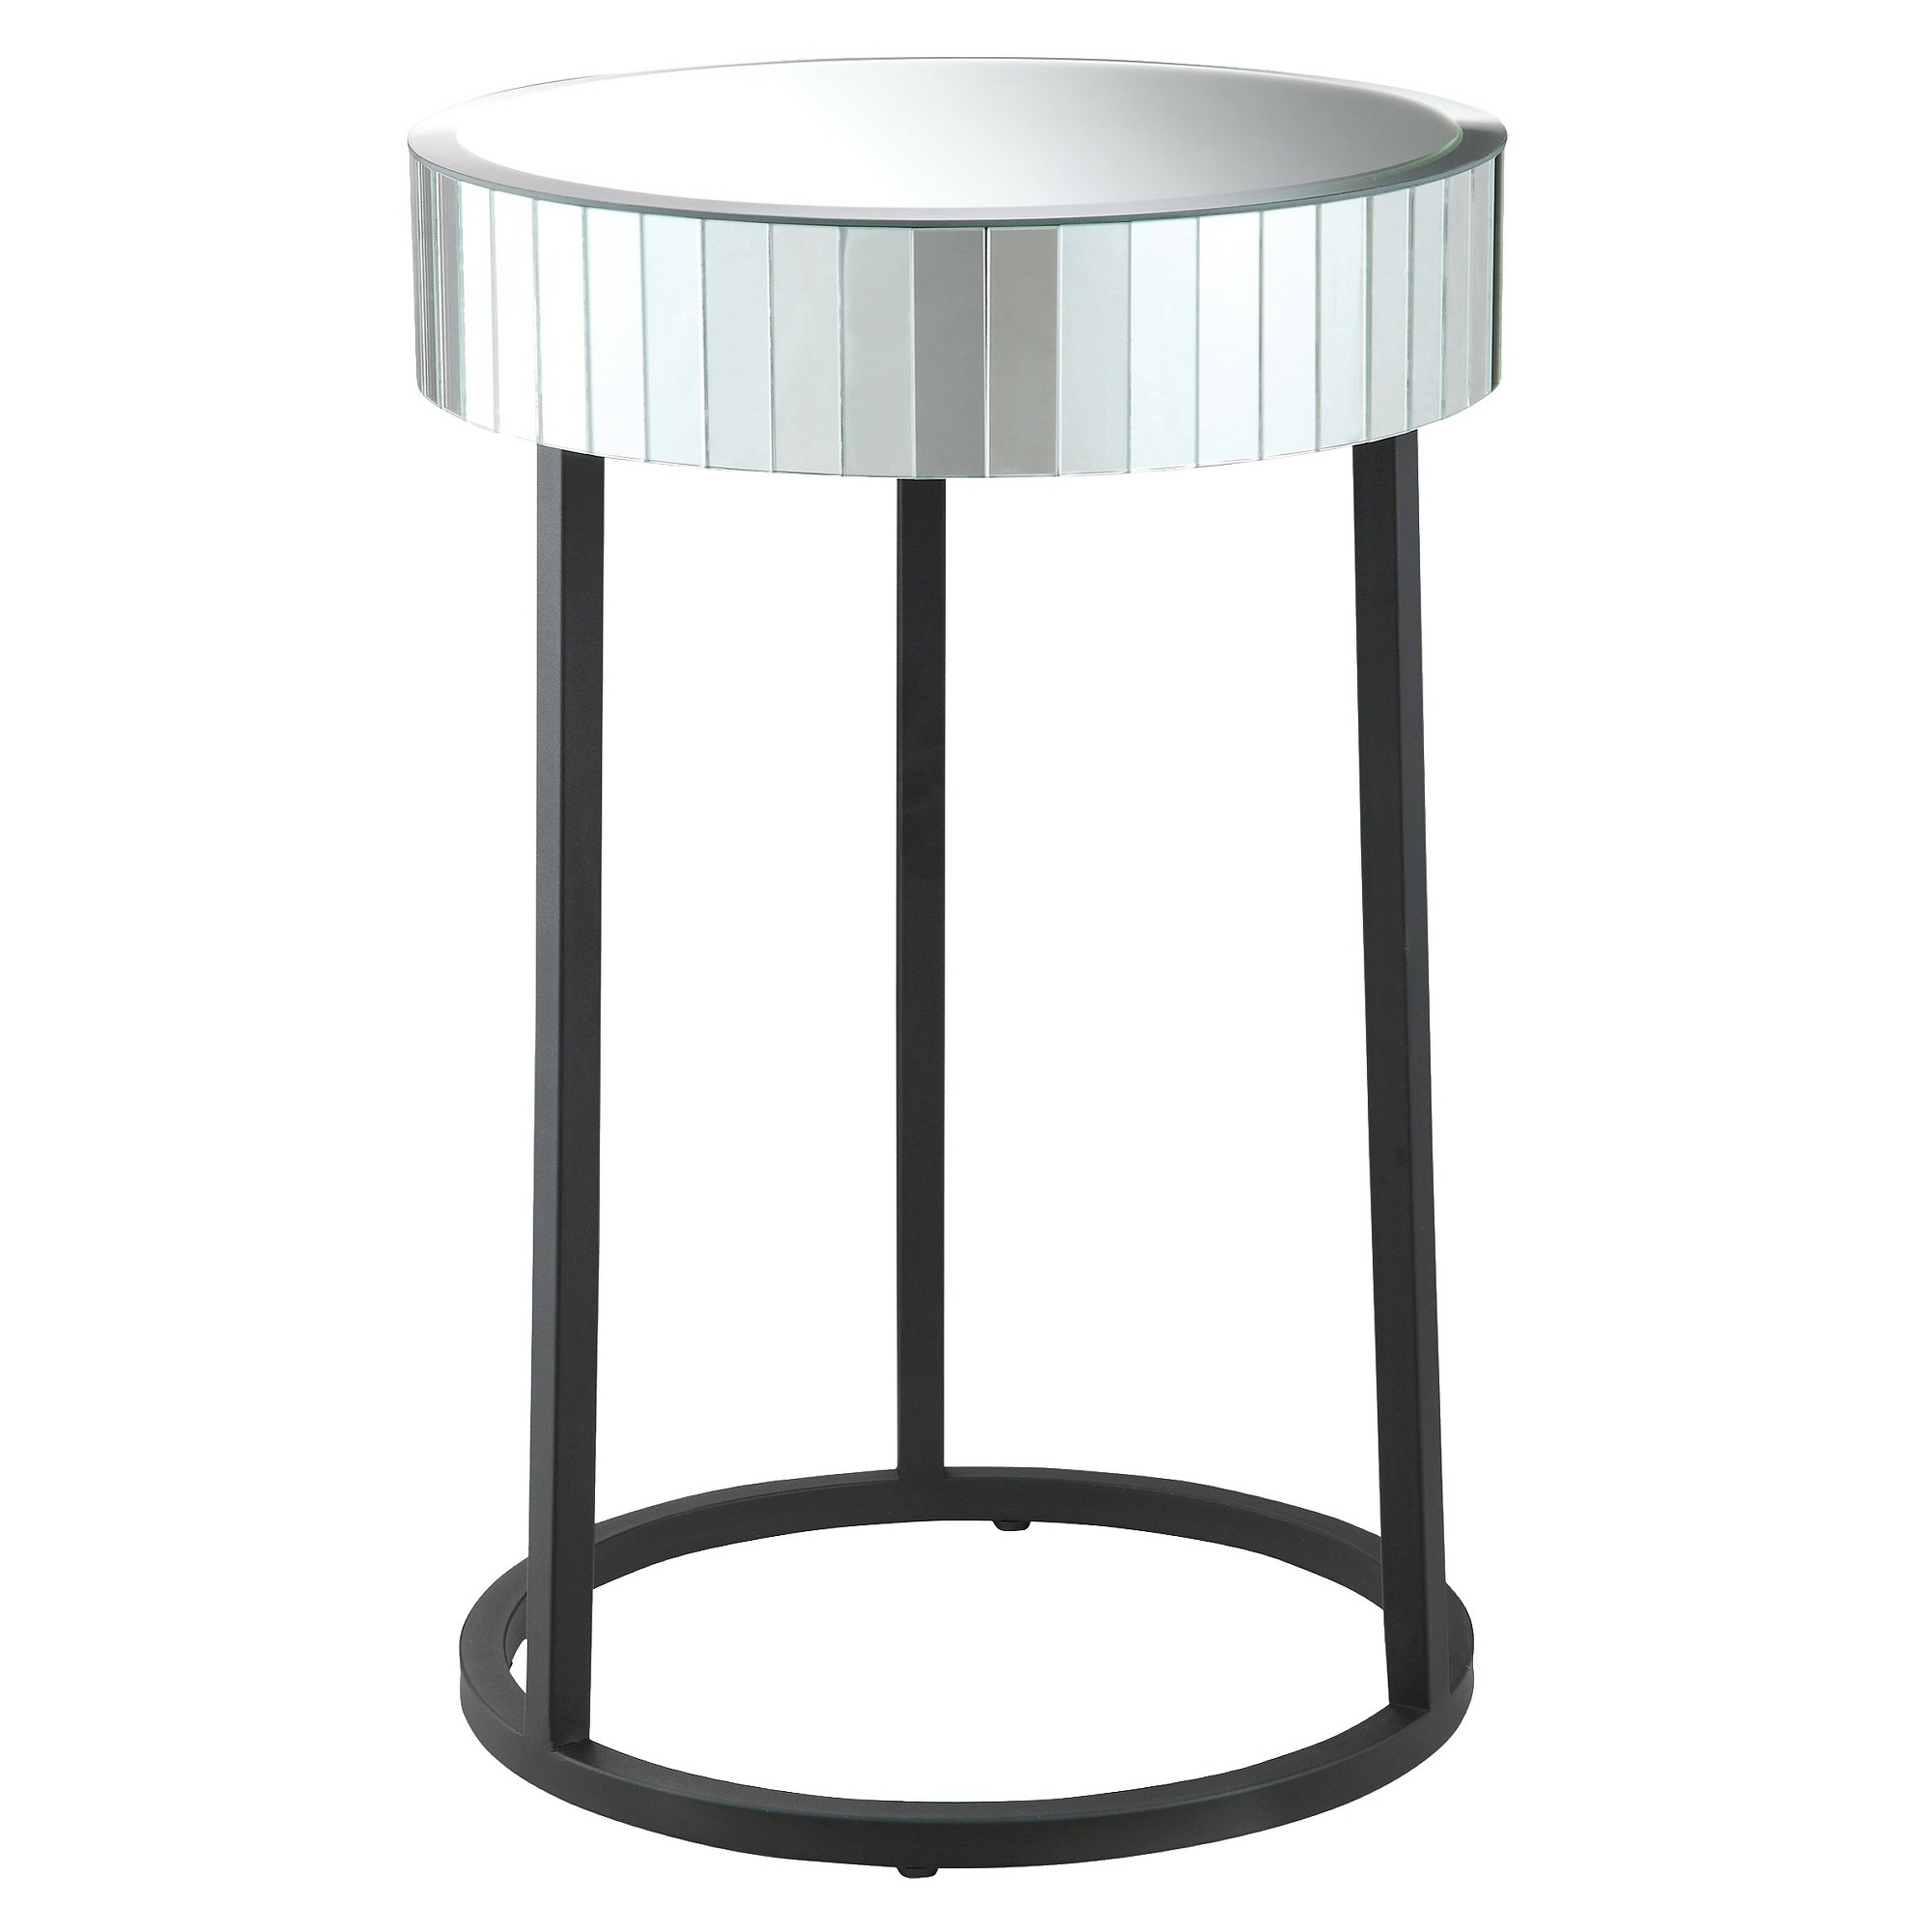 krystal round mirror accent table with metal legs office star black antique dining room half top tulip furniture centerpiece decor floor cabinet small entry console made coffee